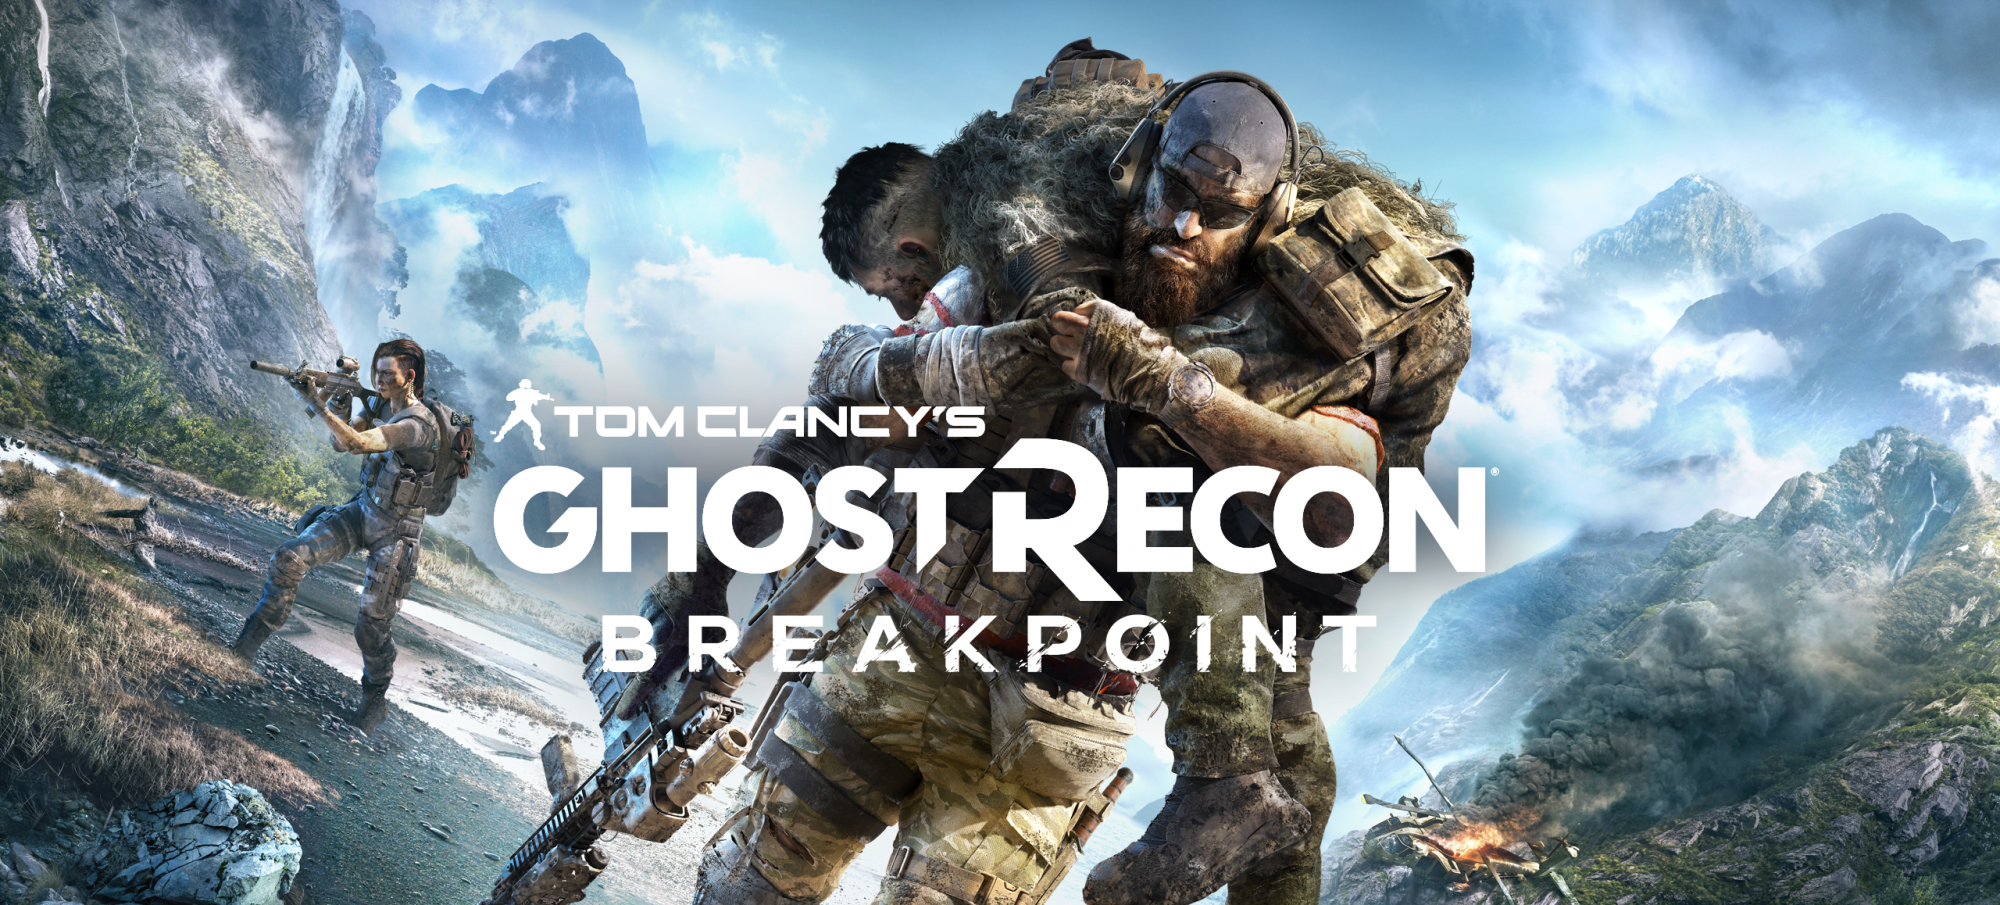 Tom-Clancys-Ghost-Recon-Breakpoint-Full-Version-Free-Download.png